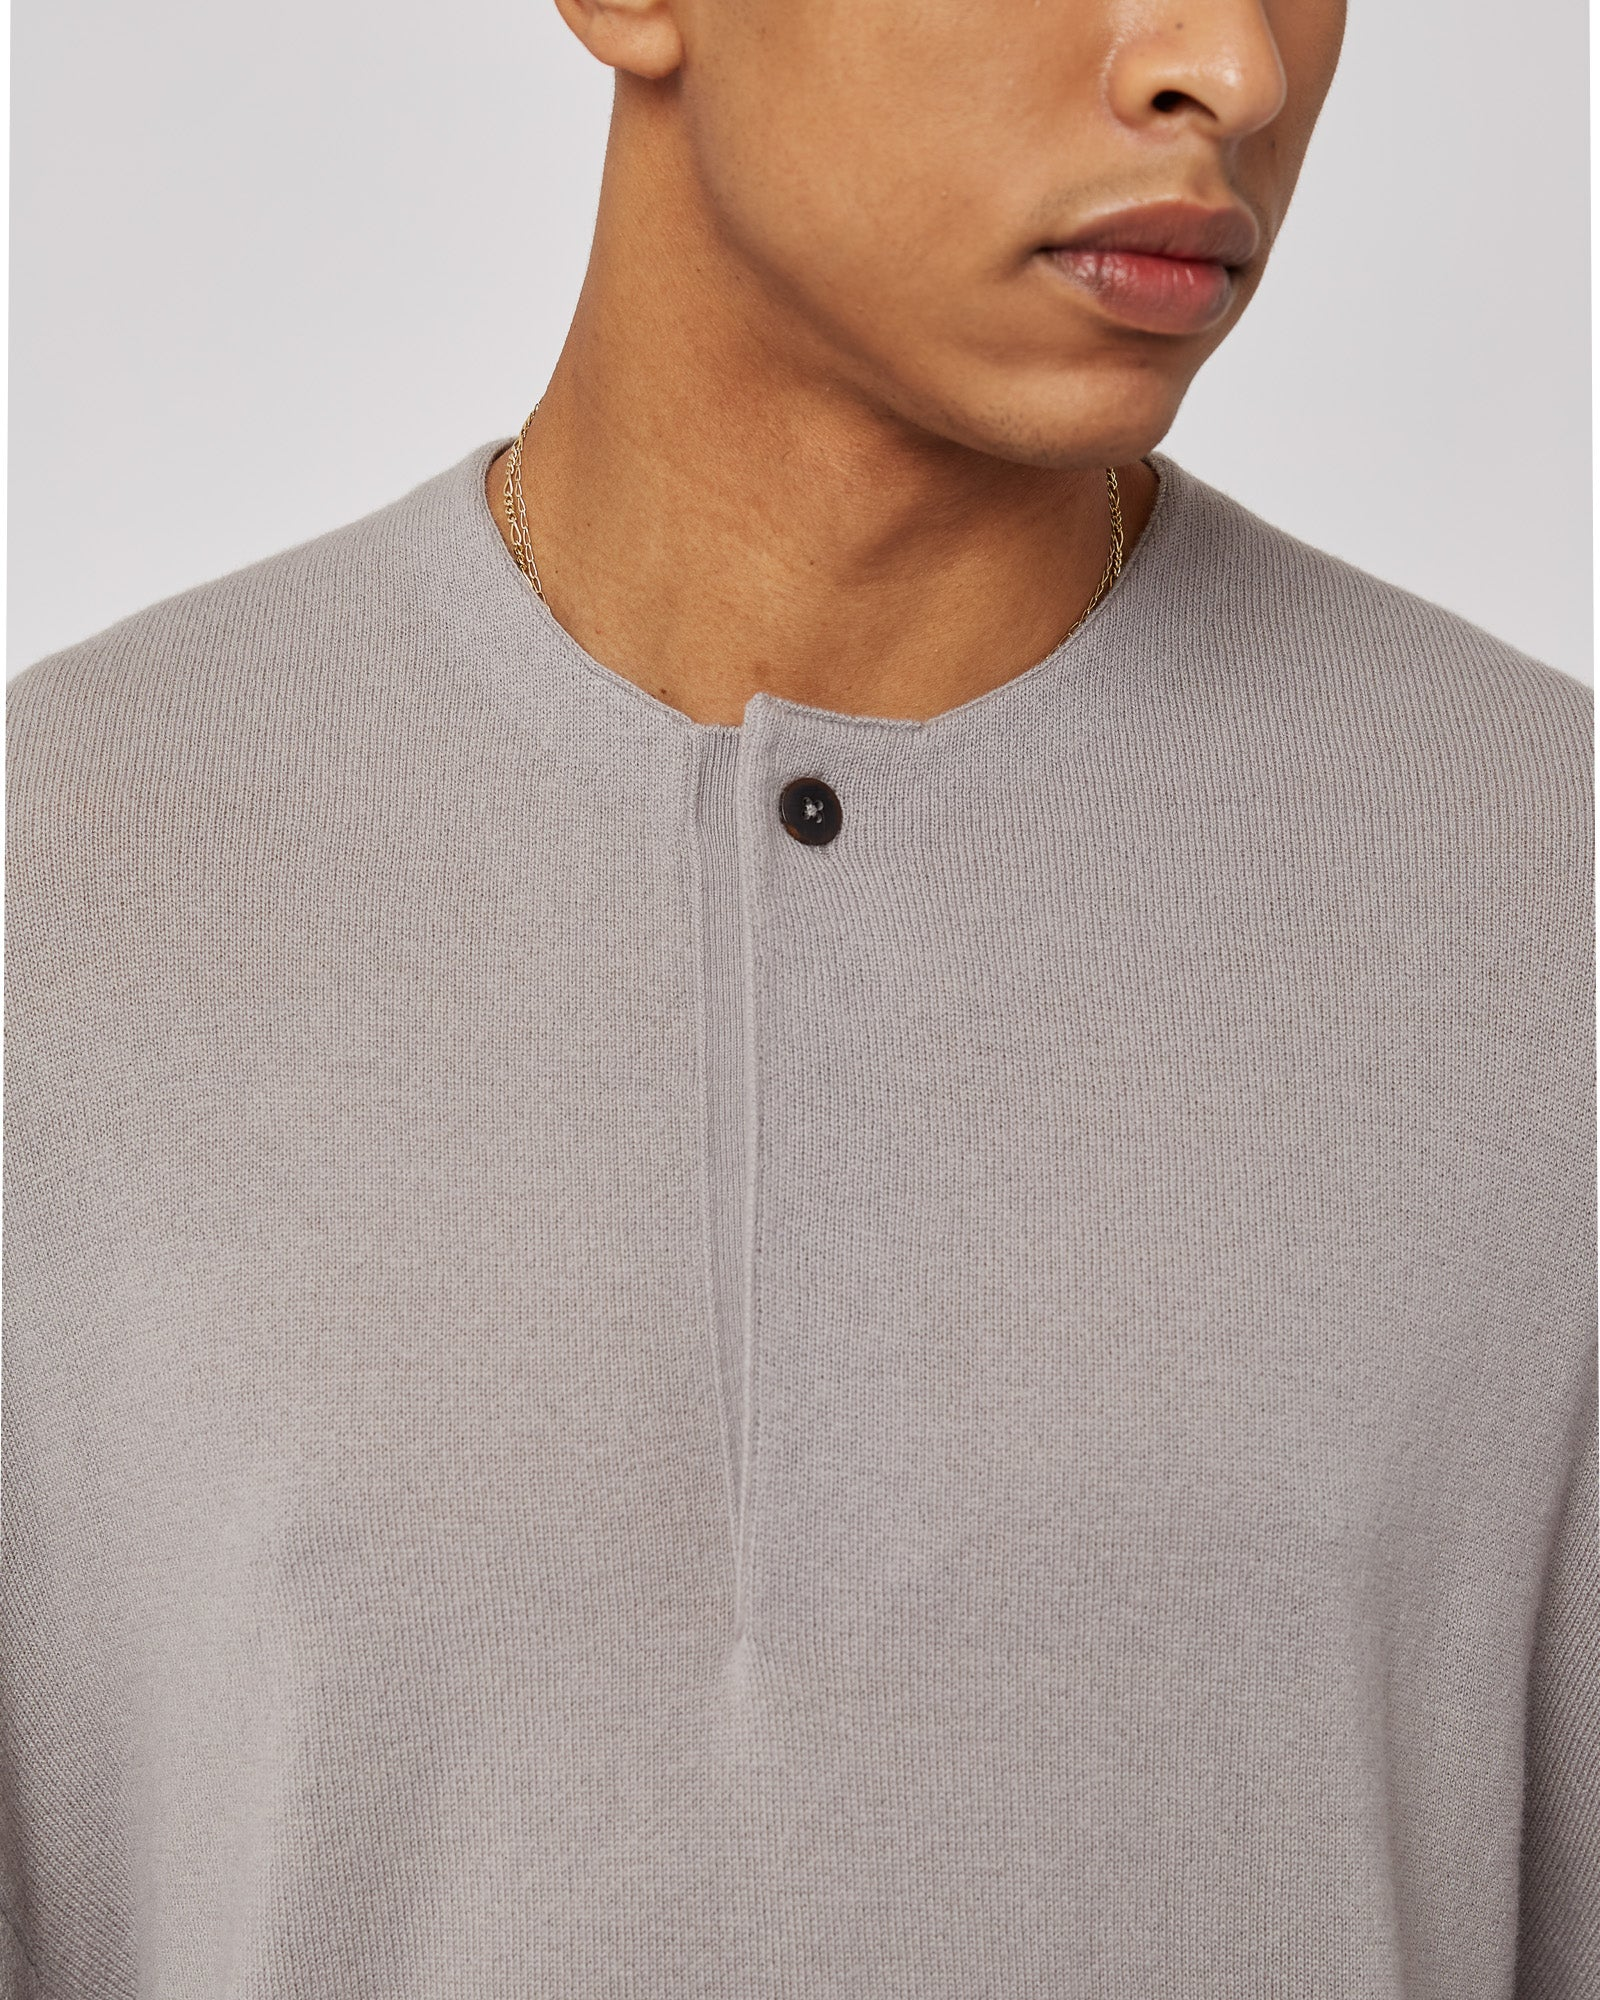 Wool Henley in Satellite Gray